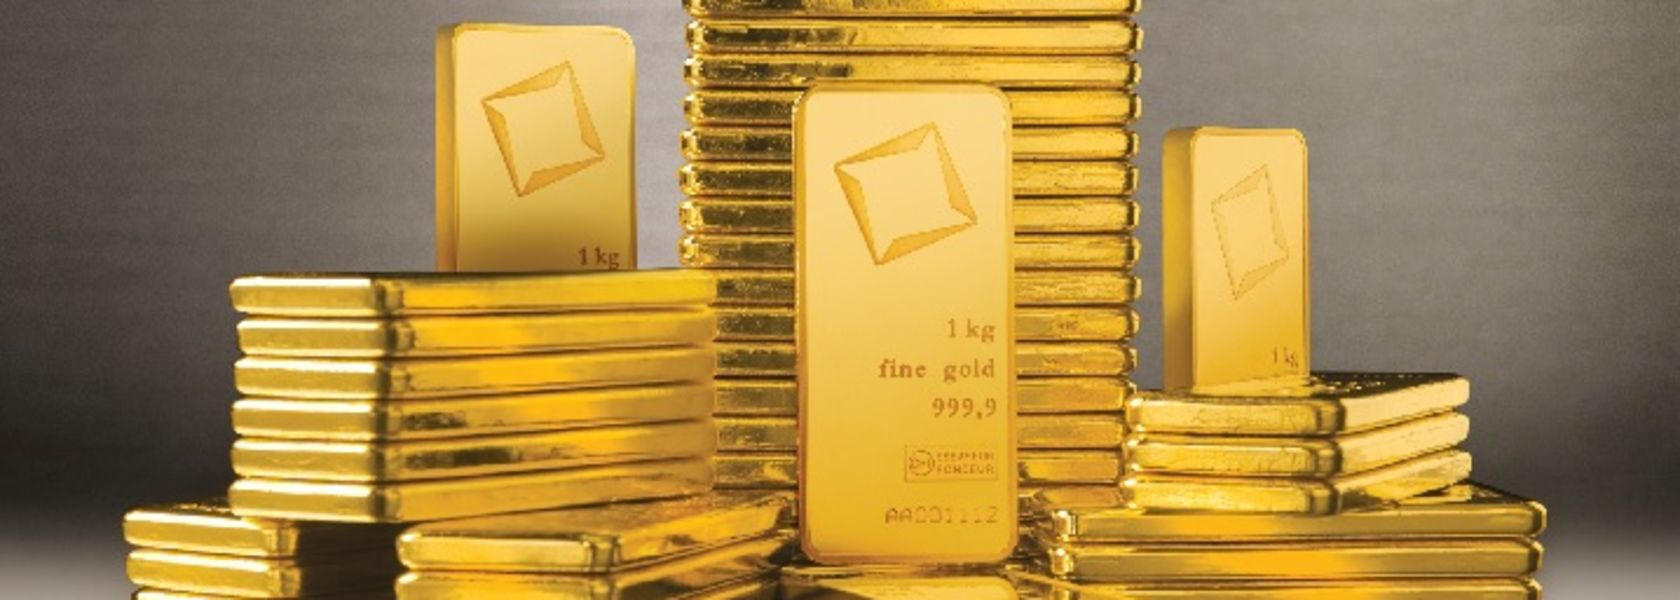 Fitch sees modest global gold output growth to 2028